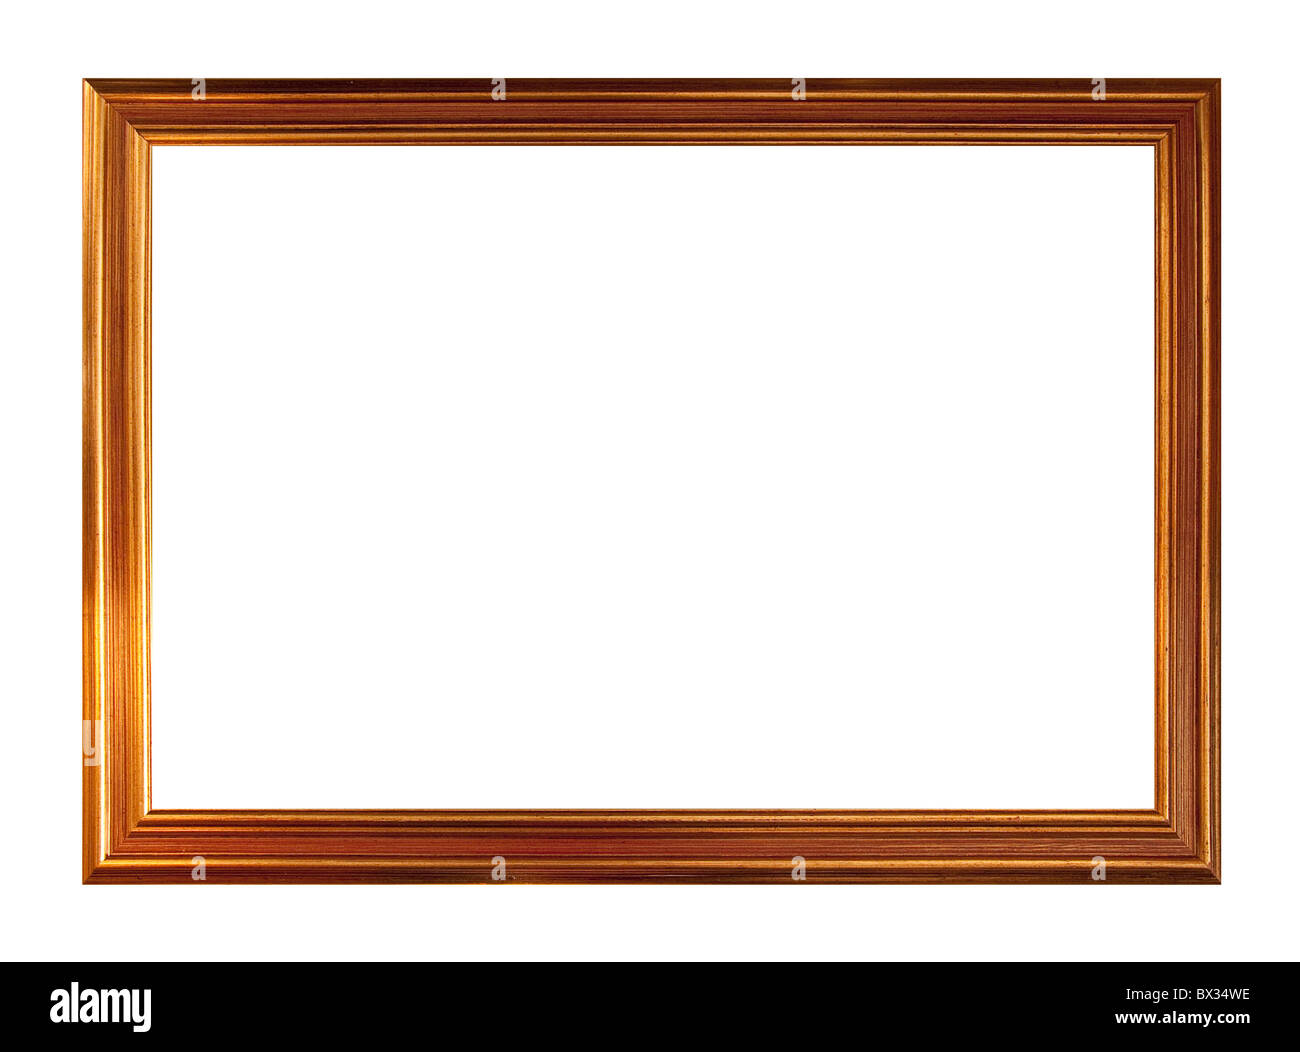 Gold picture frame, isolated on white - Stock Image